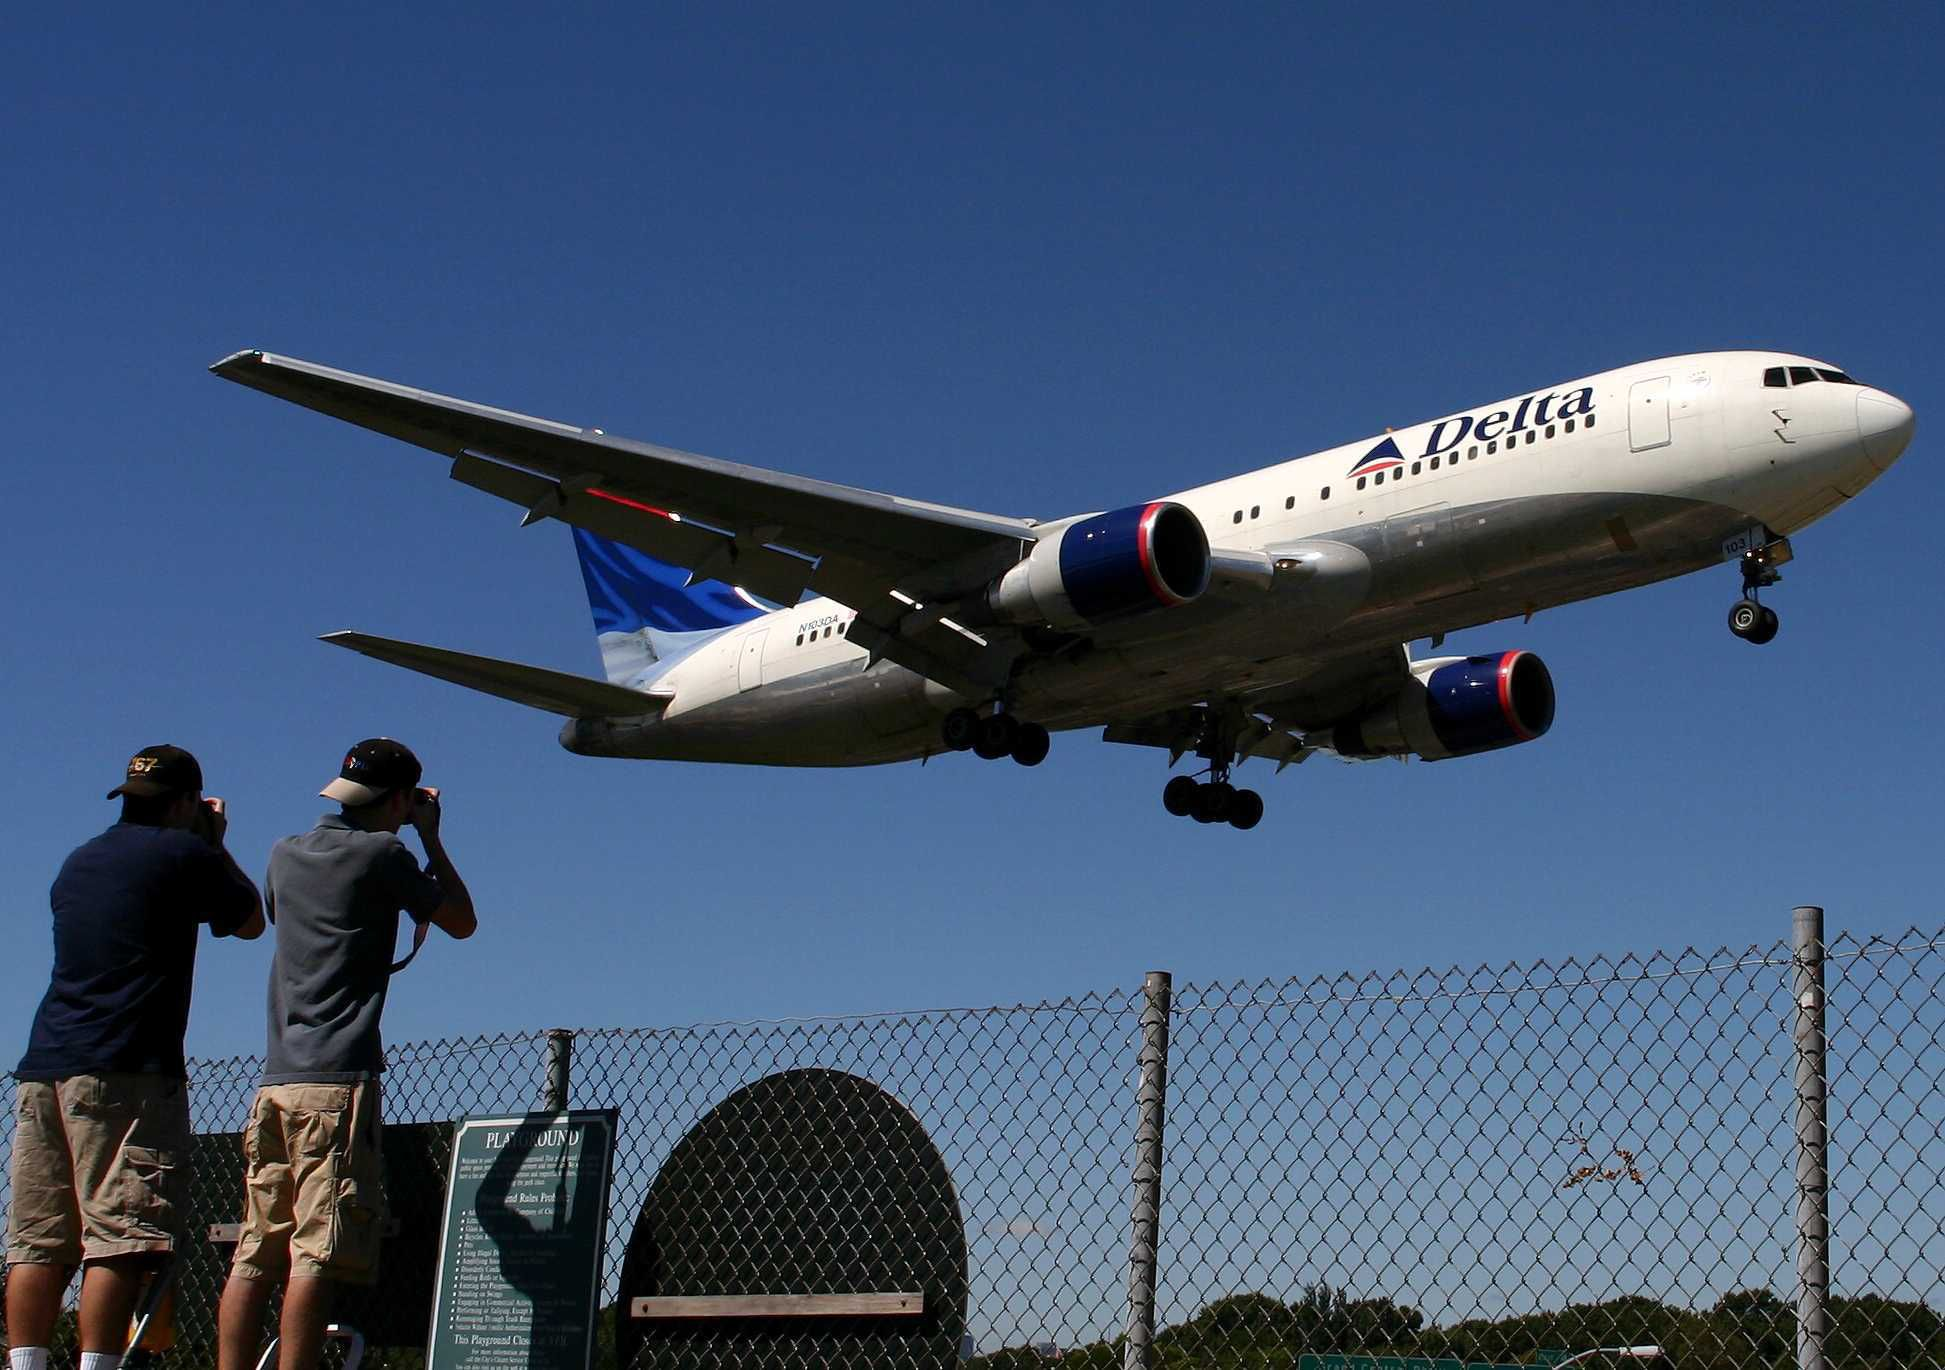 A Beginner's Guide to Plane Spotting